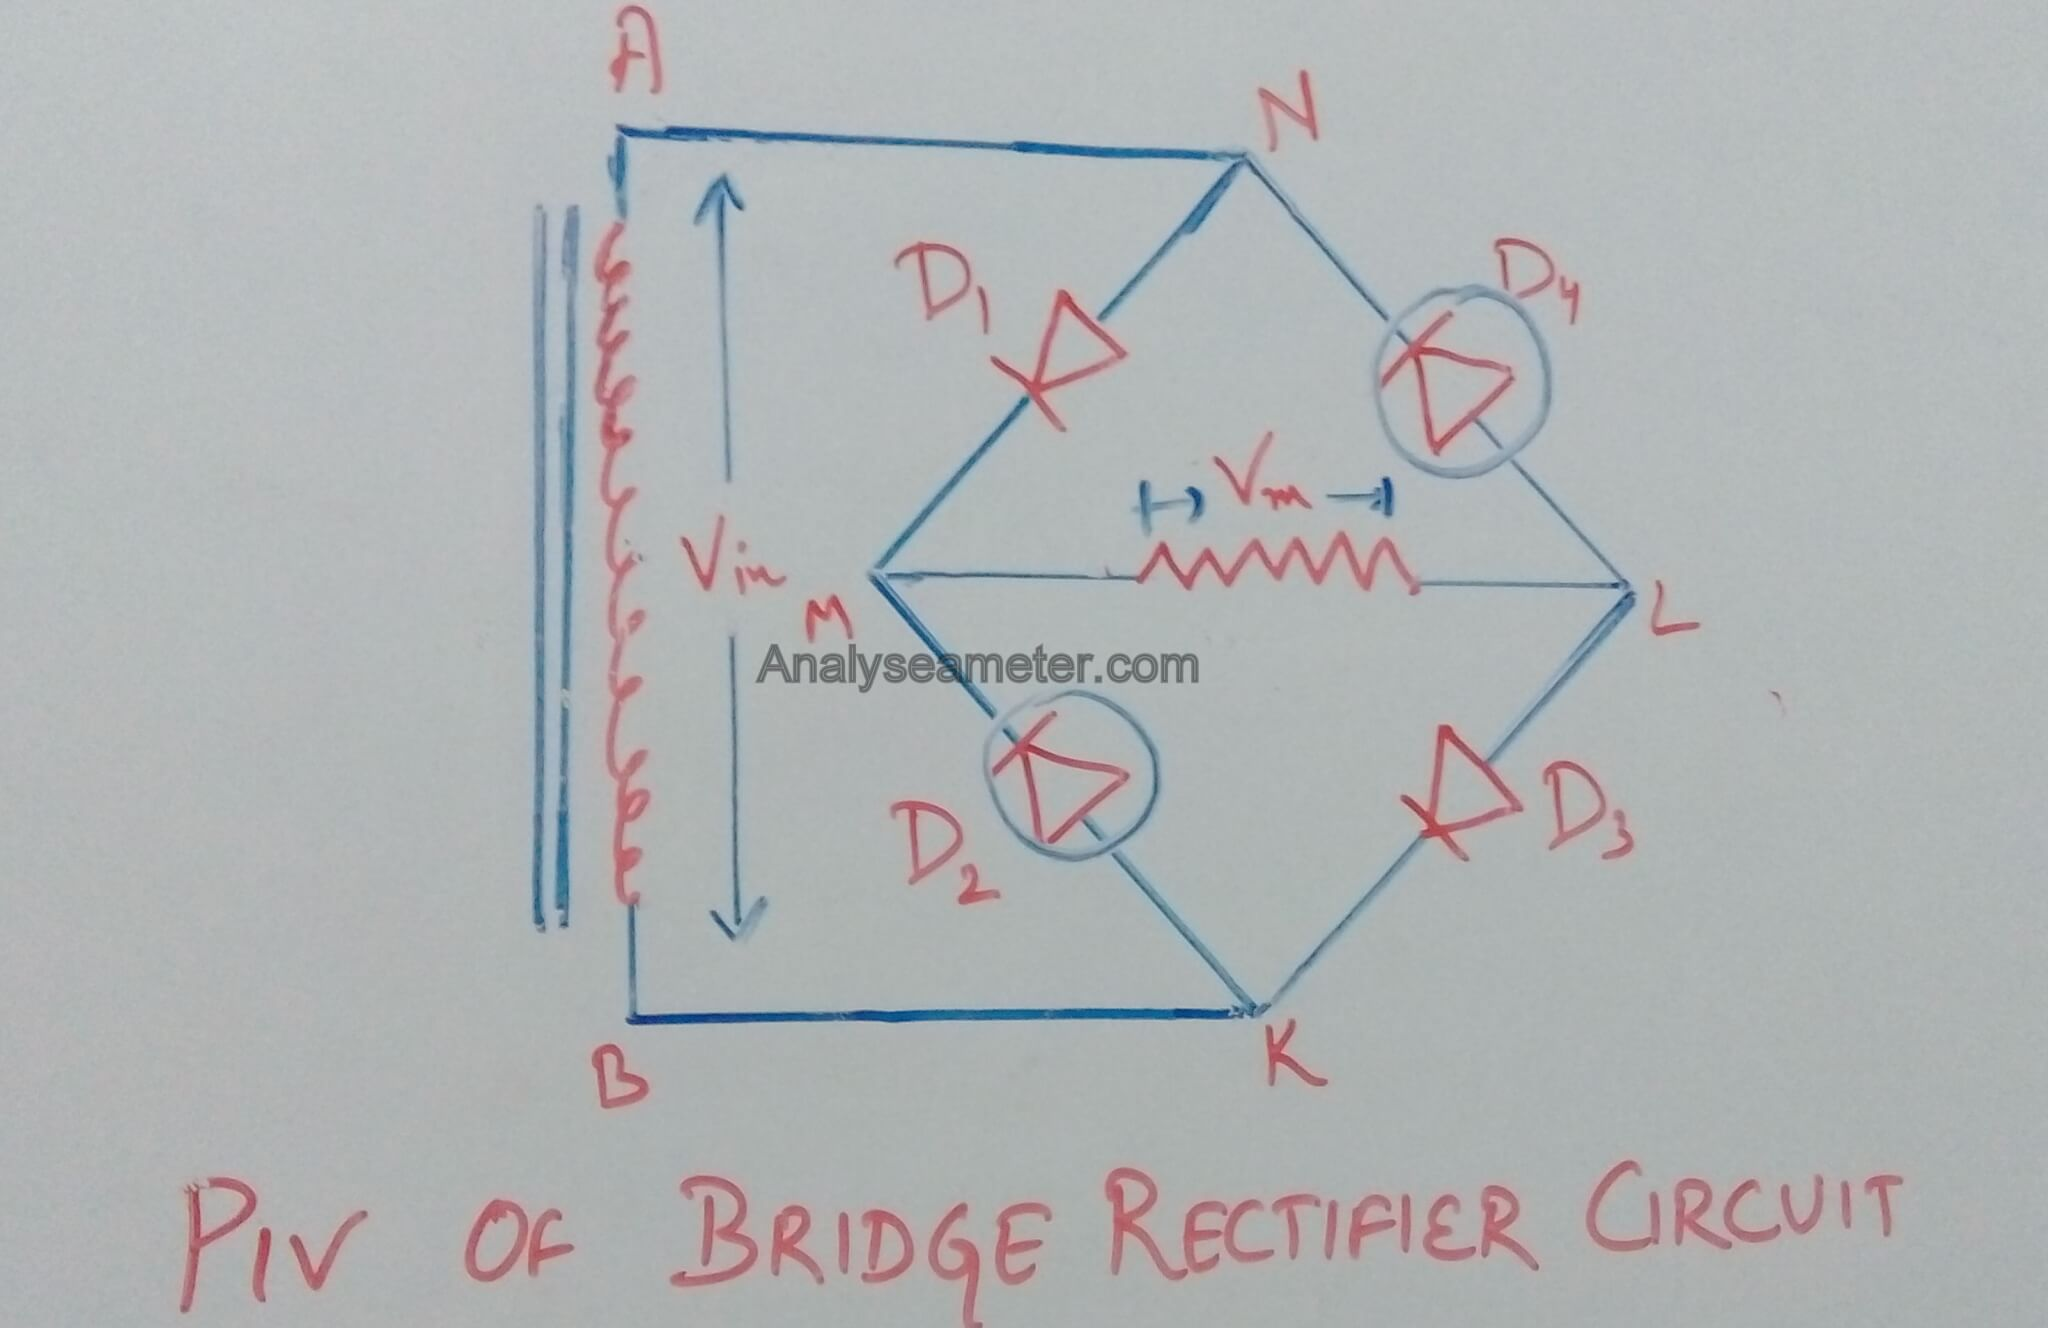 bridge rectifier circuit and operation piv of bridge rectifier circuit image